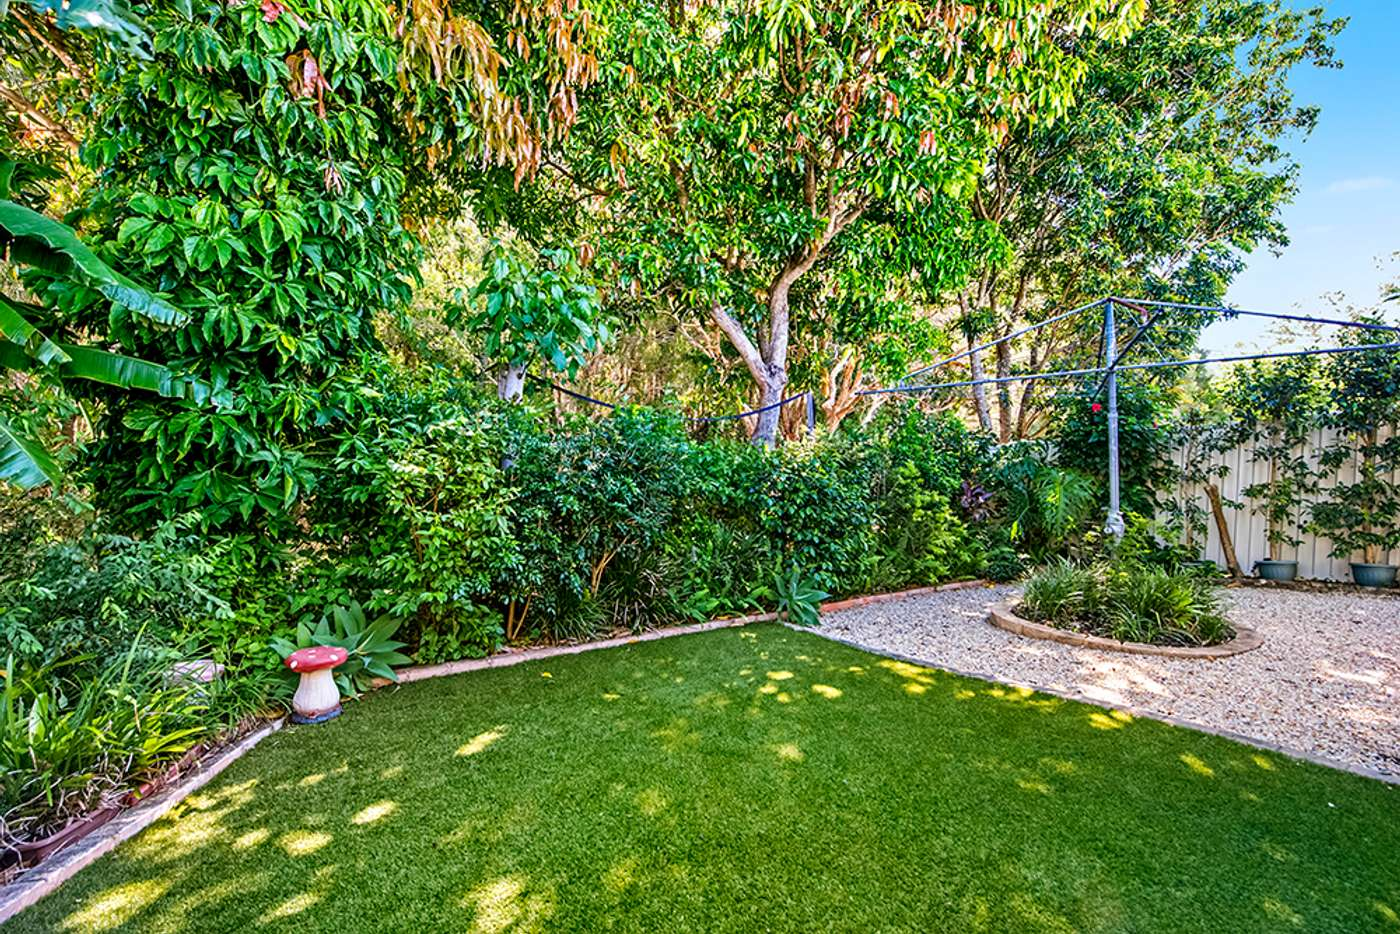 Main view of Homely house listing, 237/22 'Gateway Living' Hansford Road, Coombabah QLD 4216